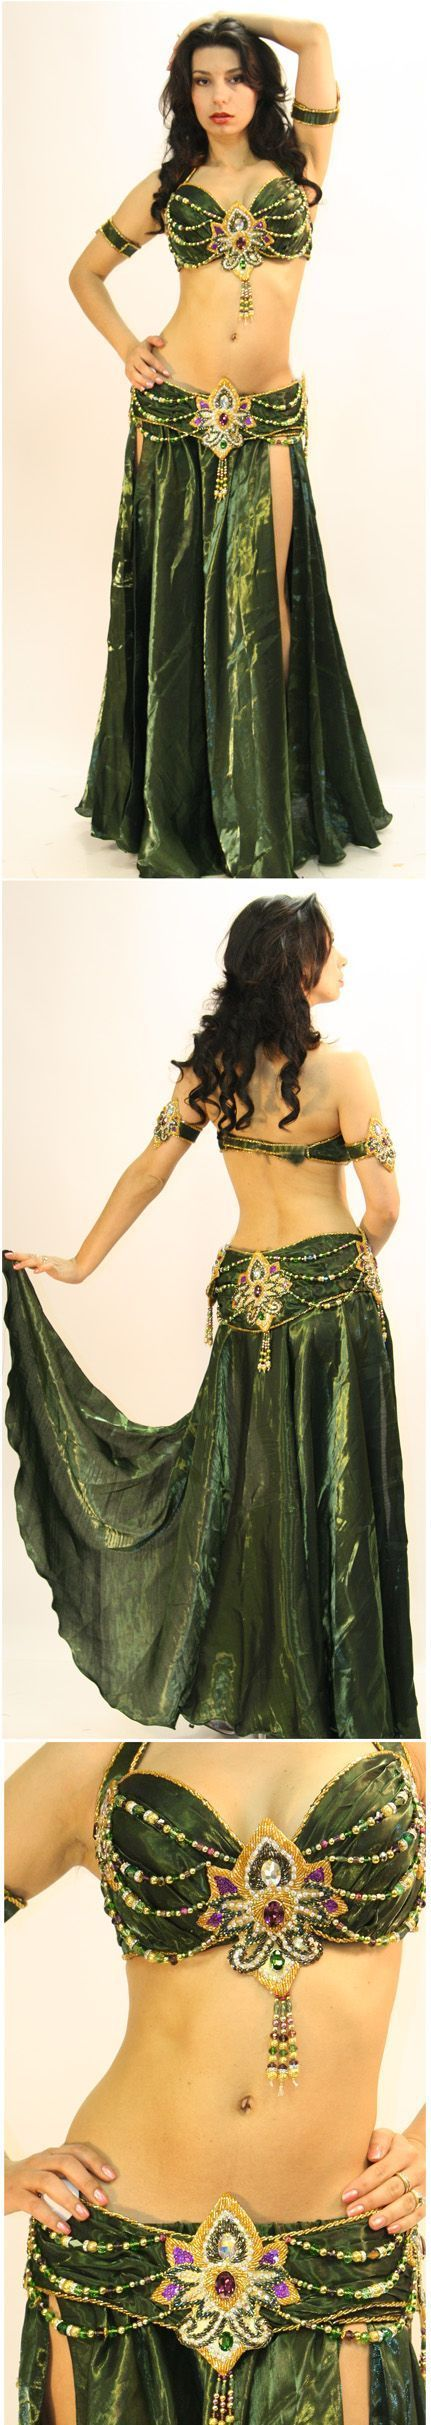 pushkar fashion industry belly dance costumes buy for contact in whole sale prices,whatsapp +919214873512,www.indiamartstore.com,